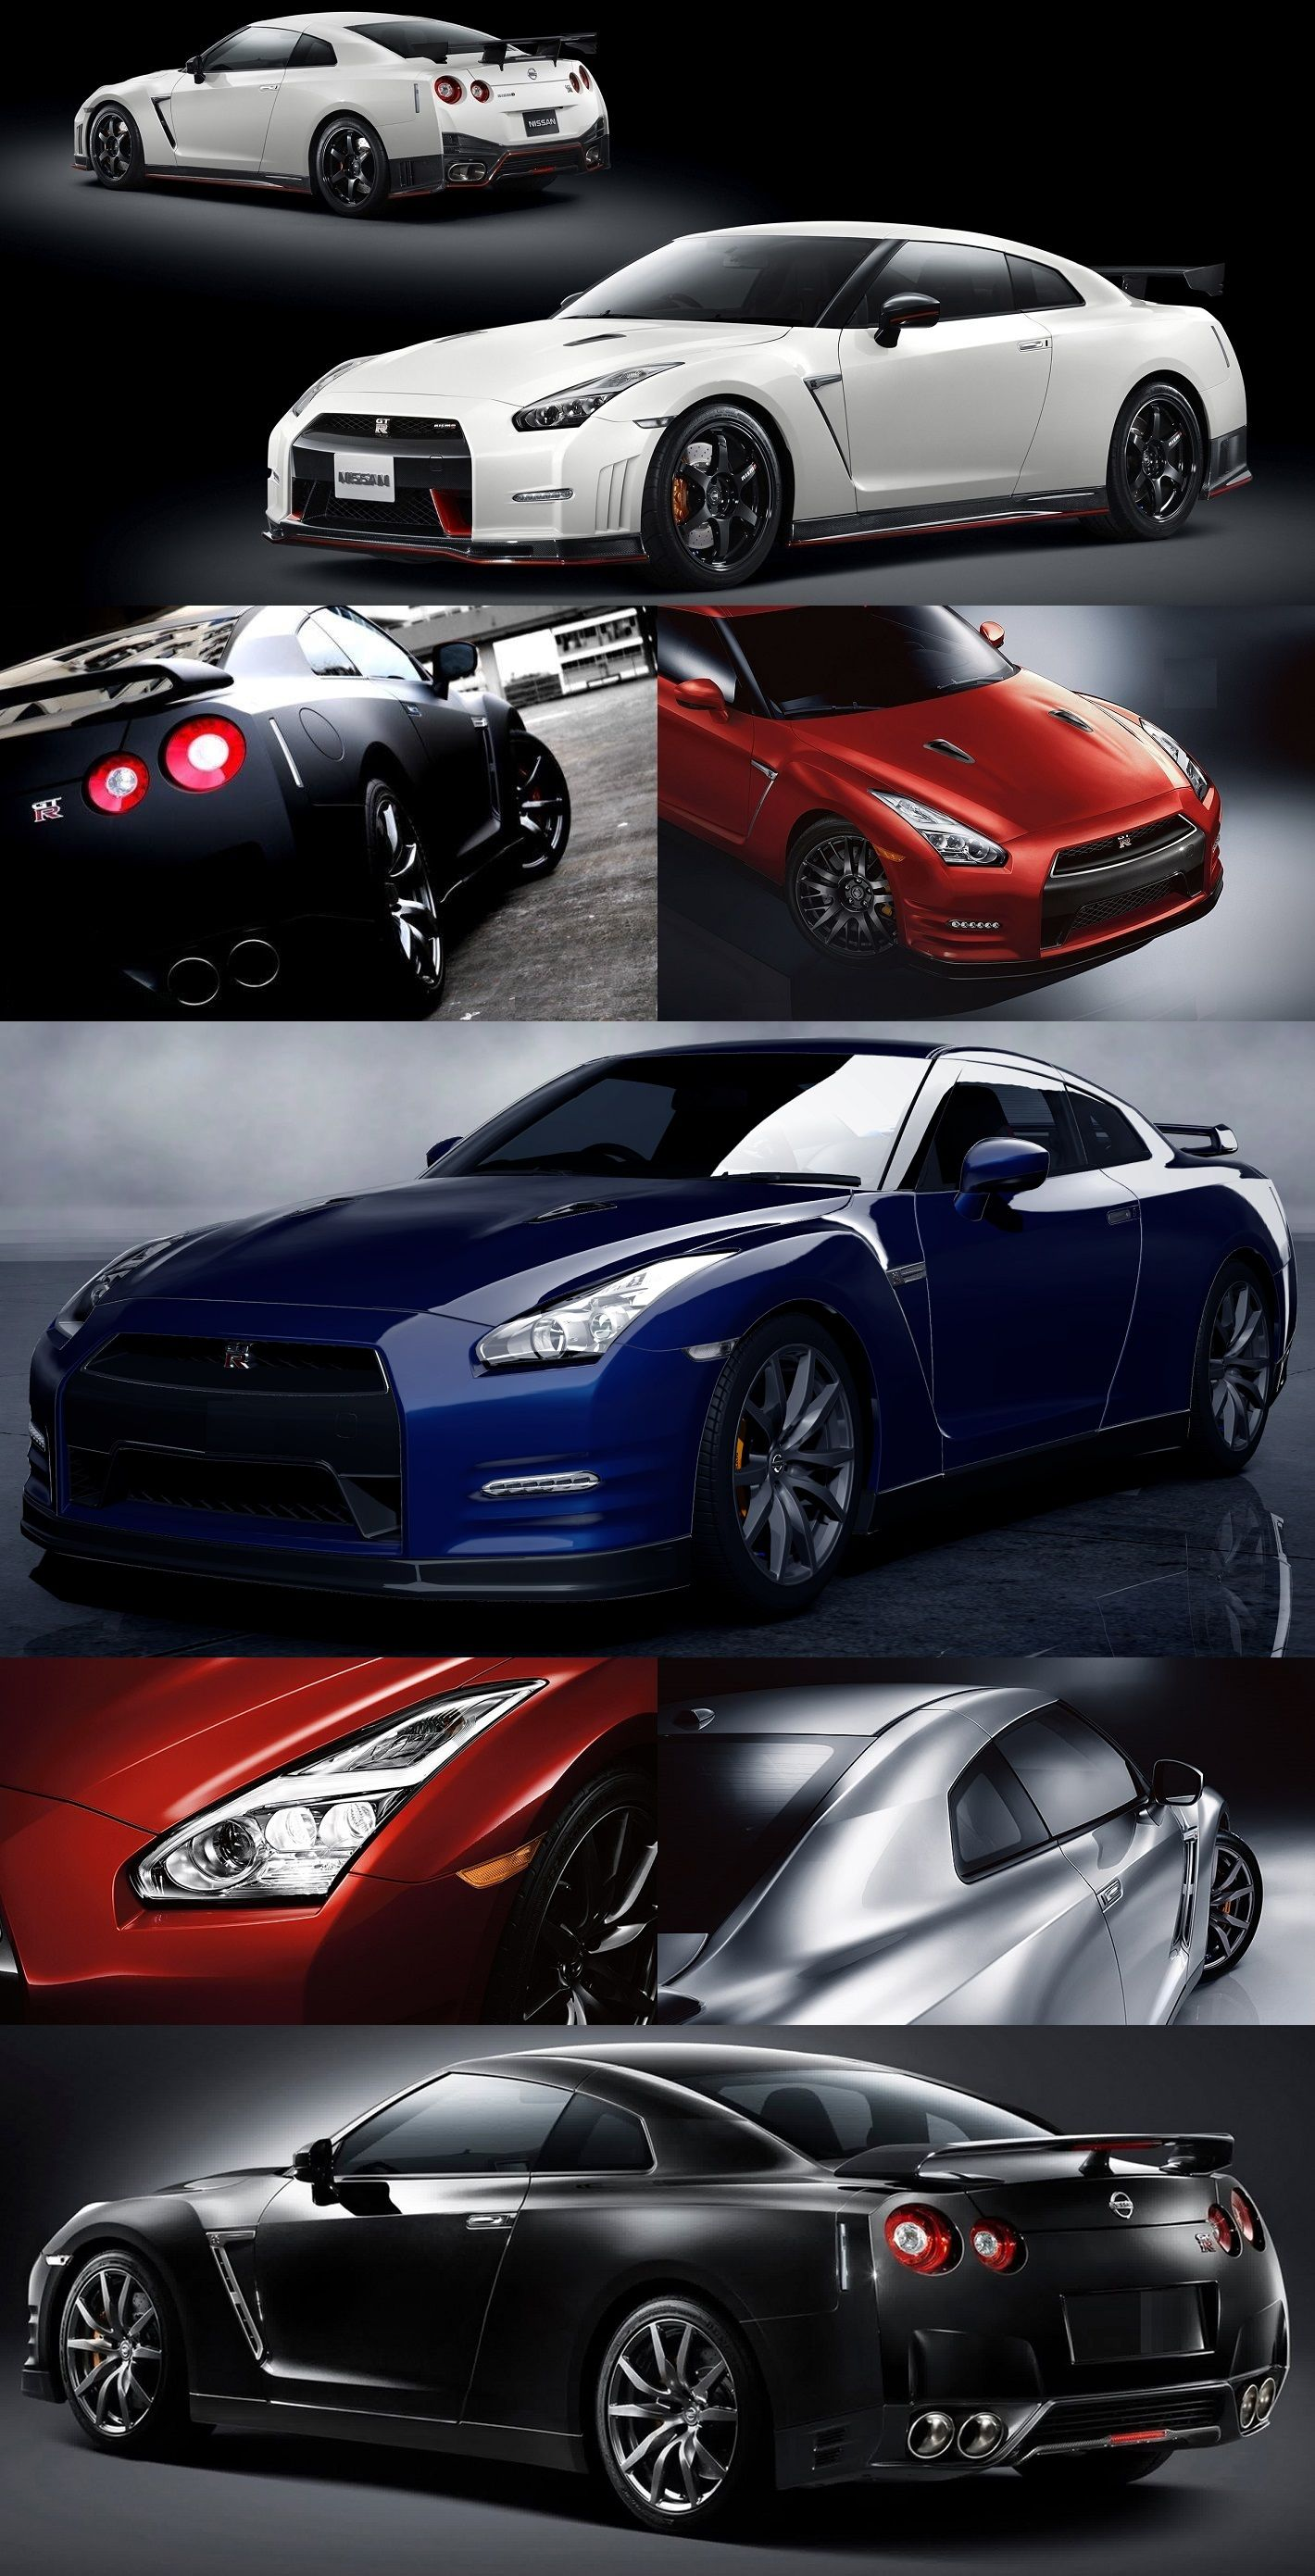 Used Nissan Gt-r for Sale Unique Godzilla the Nissan Gtr Super Car Gt R Pinterest